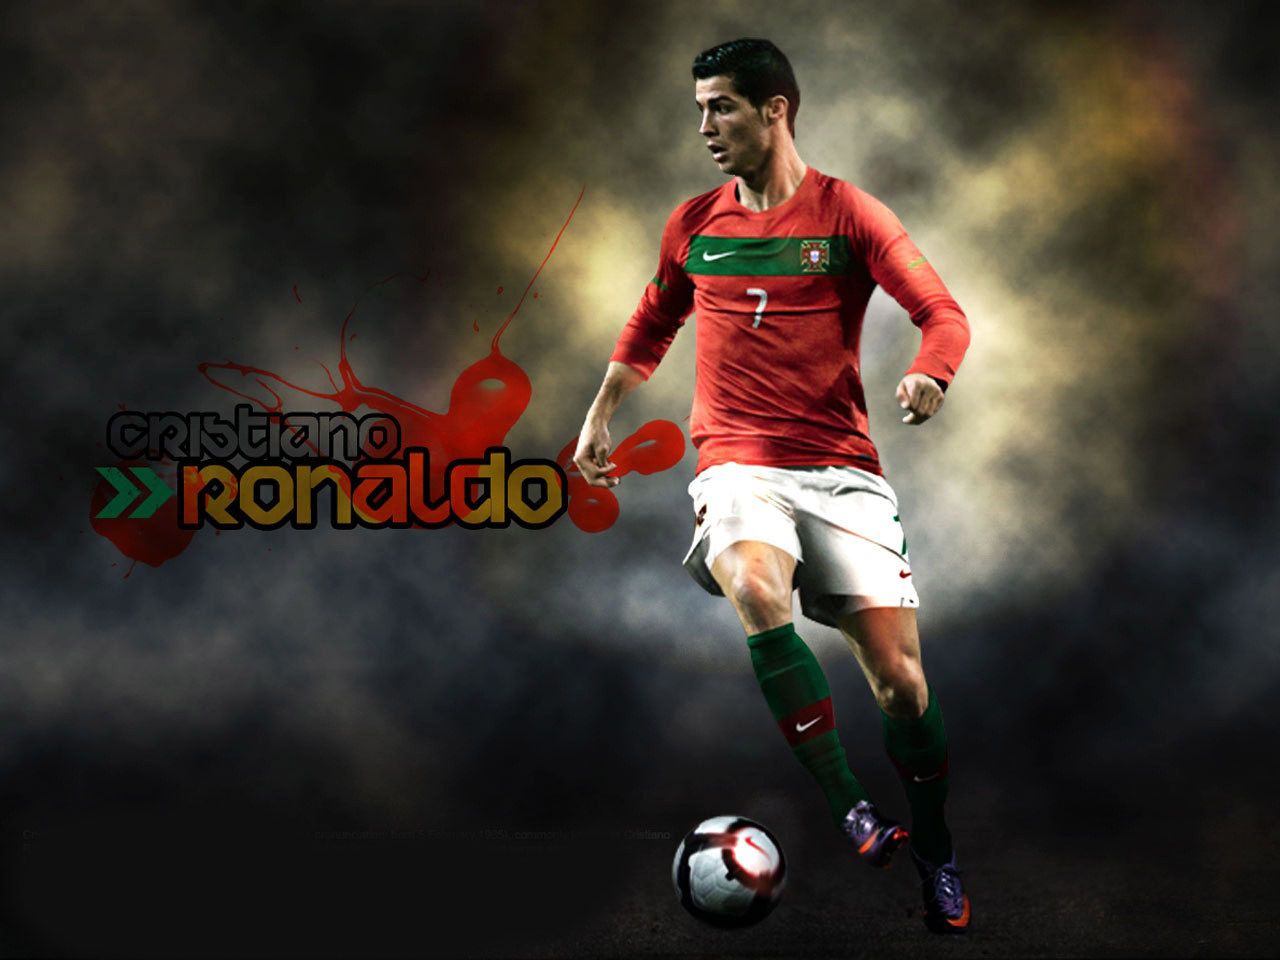 cristiano ronaldo football player latest hd wallpapers 2013 all